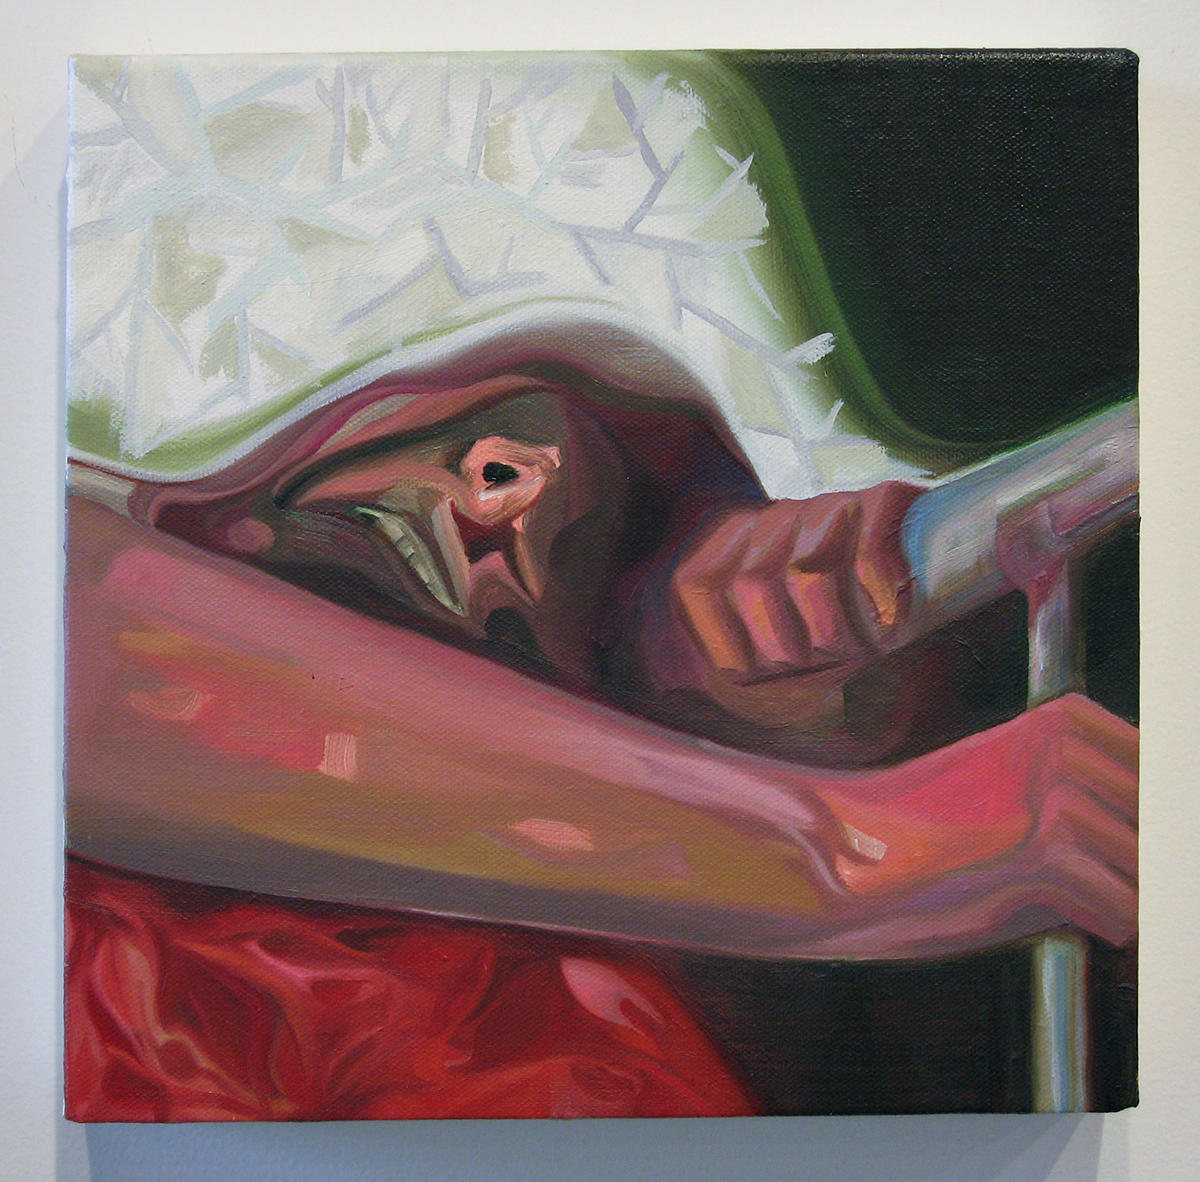 All Lights Out, 2005. Oil on canvas. 10 x 10 inches.